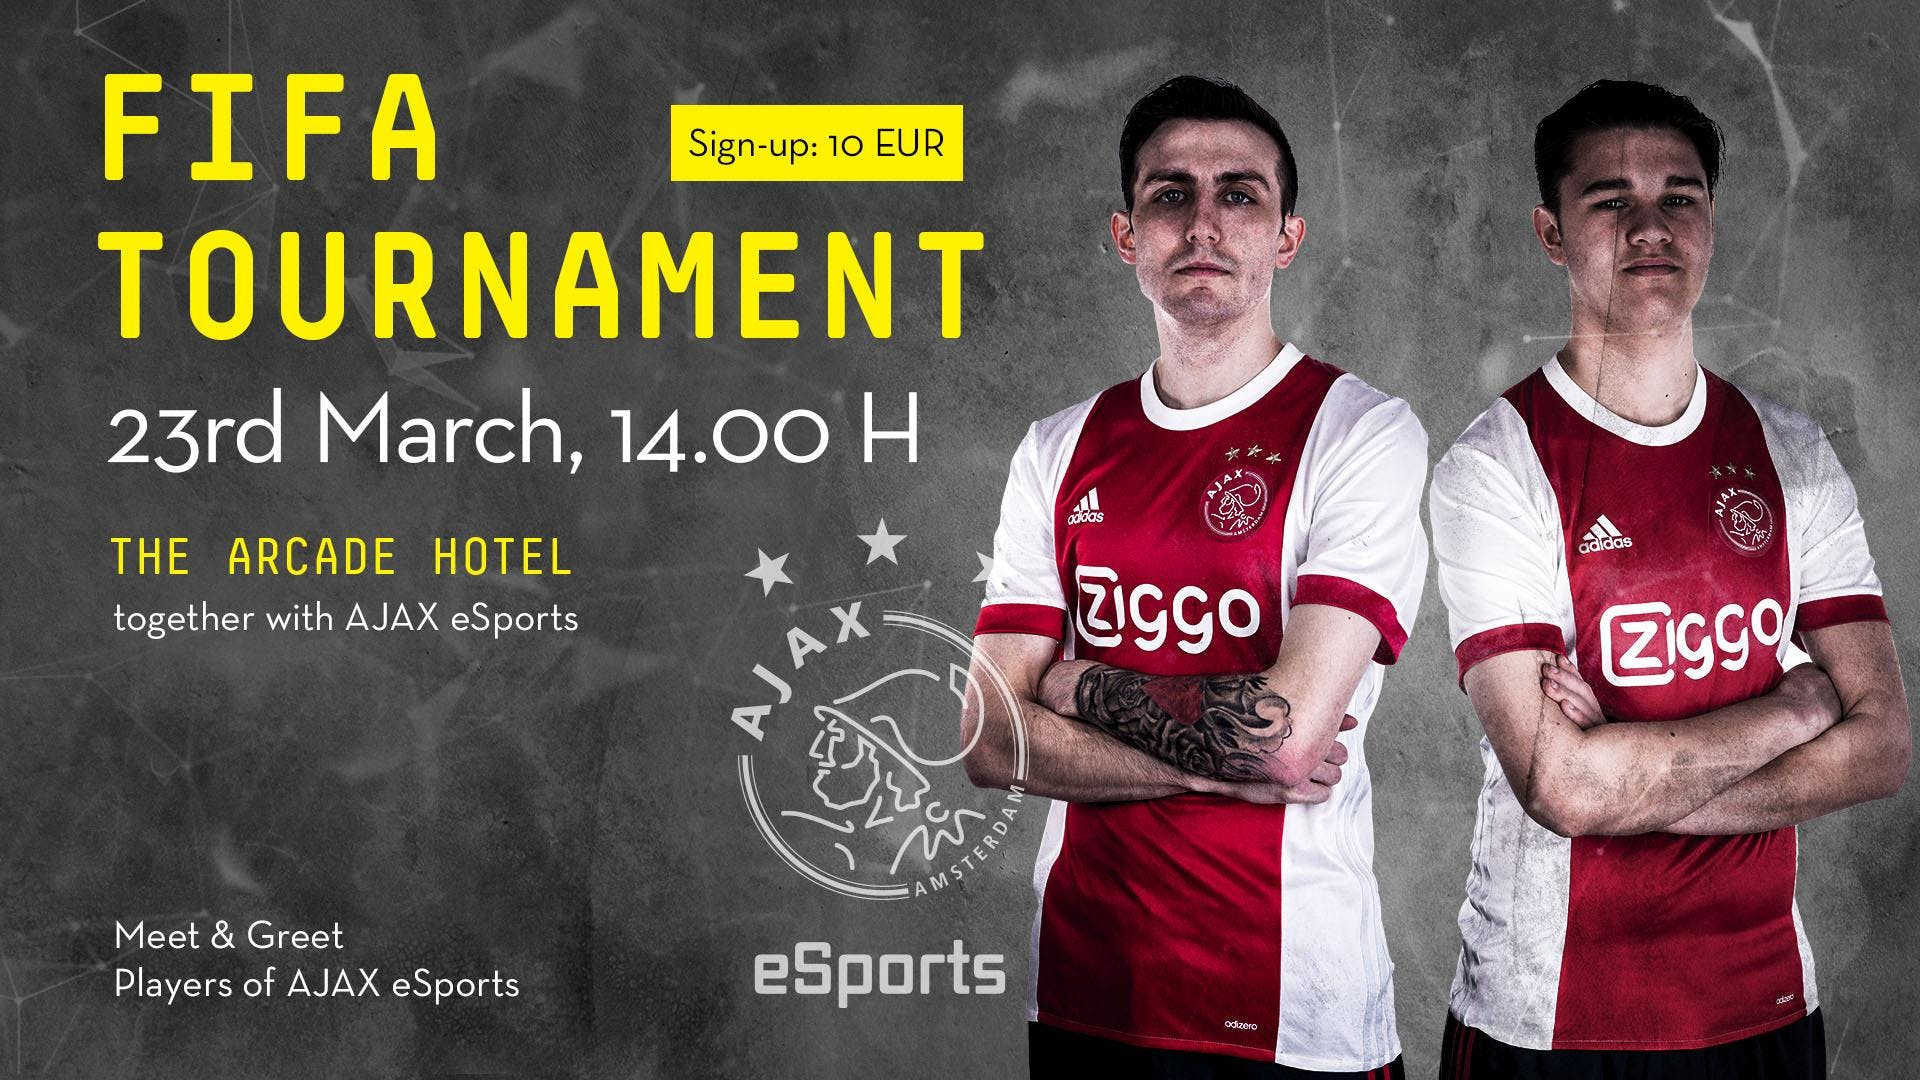 The Arcade Hotel, FIFA Championships March